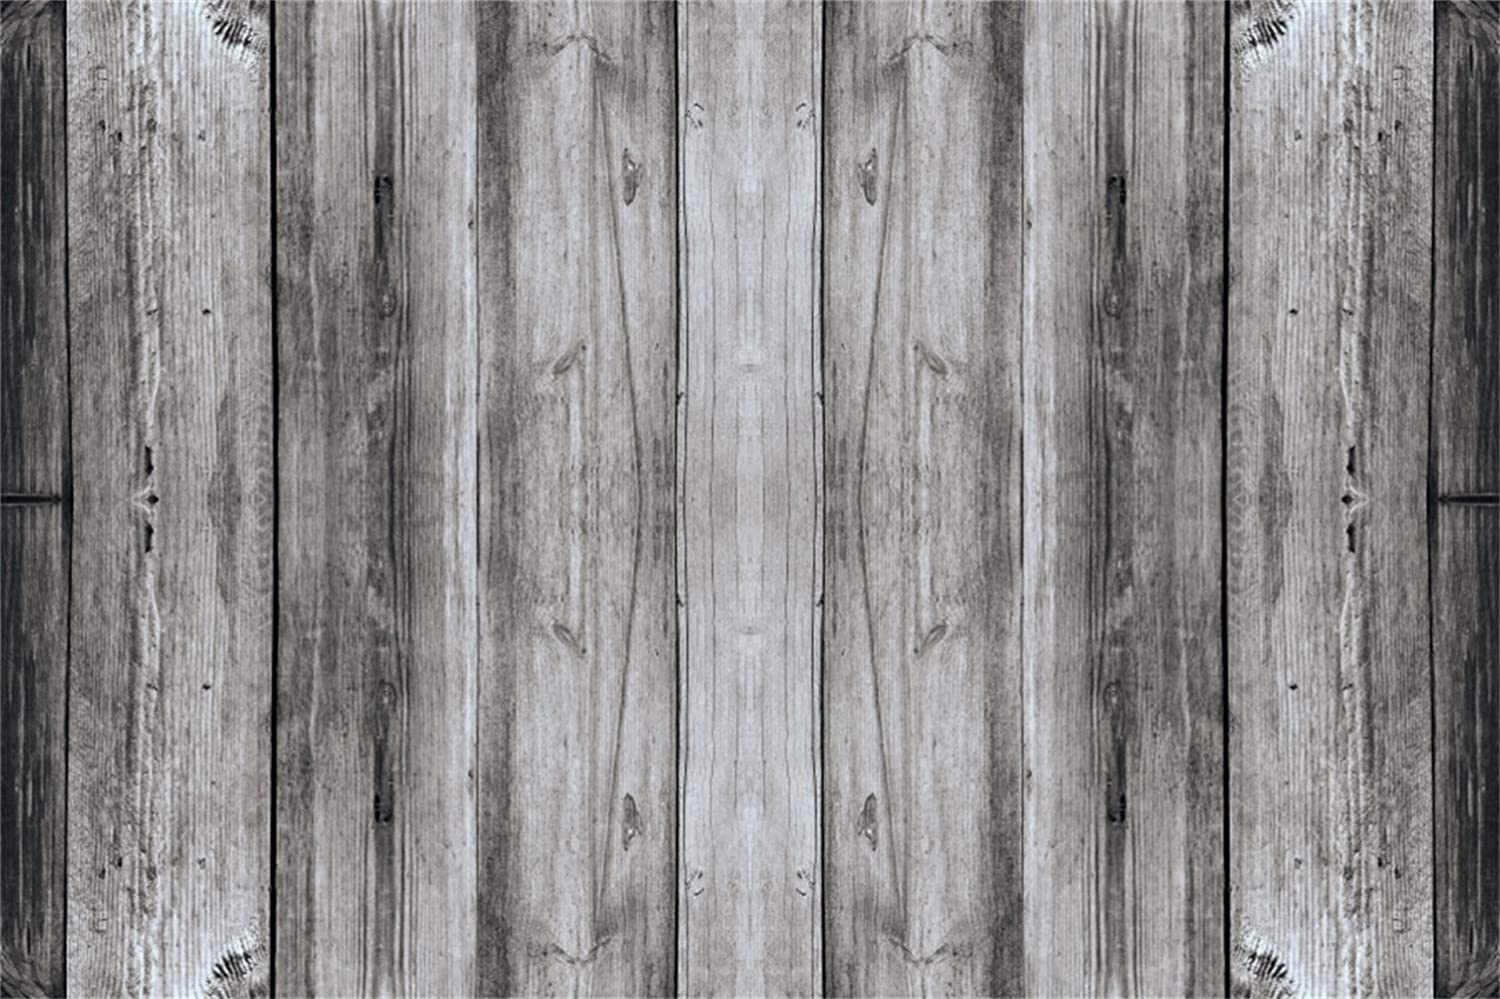 15x10ft Polyester Wood Backdrops for Photography Grunge Wooden Texture Vintage Old Turquoise Background Retro Nostalgic Green Wall Flaking Texture Wooden Studio Photo Props